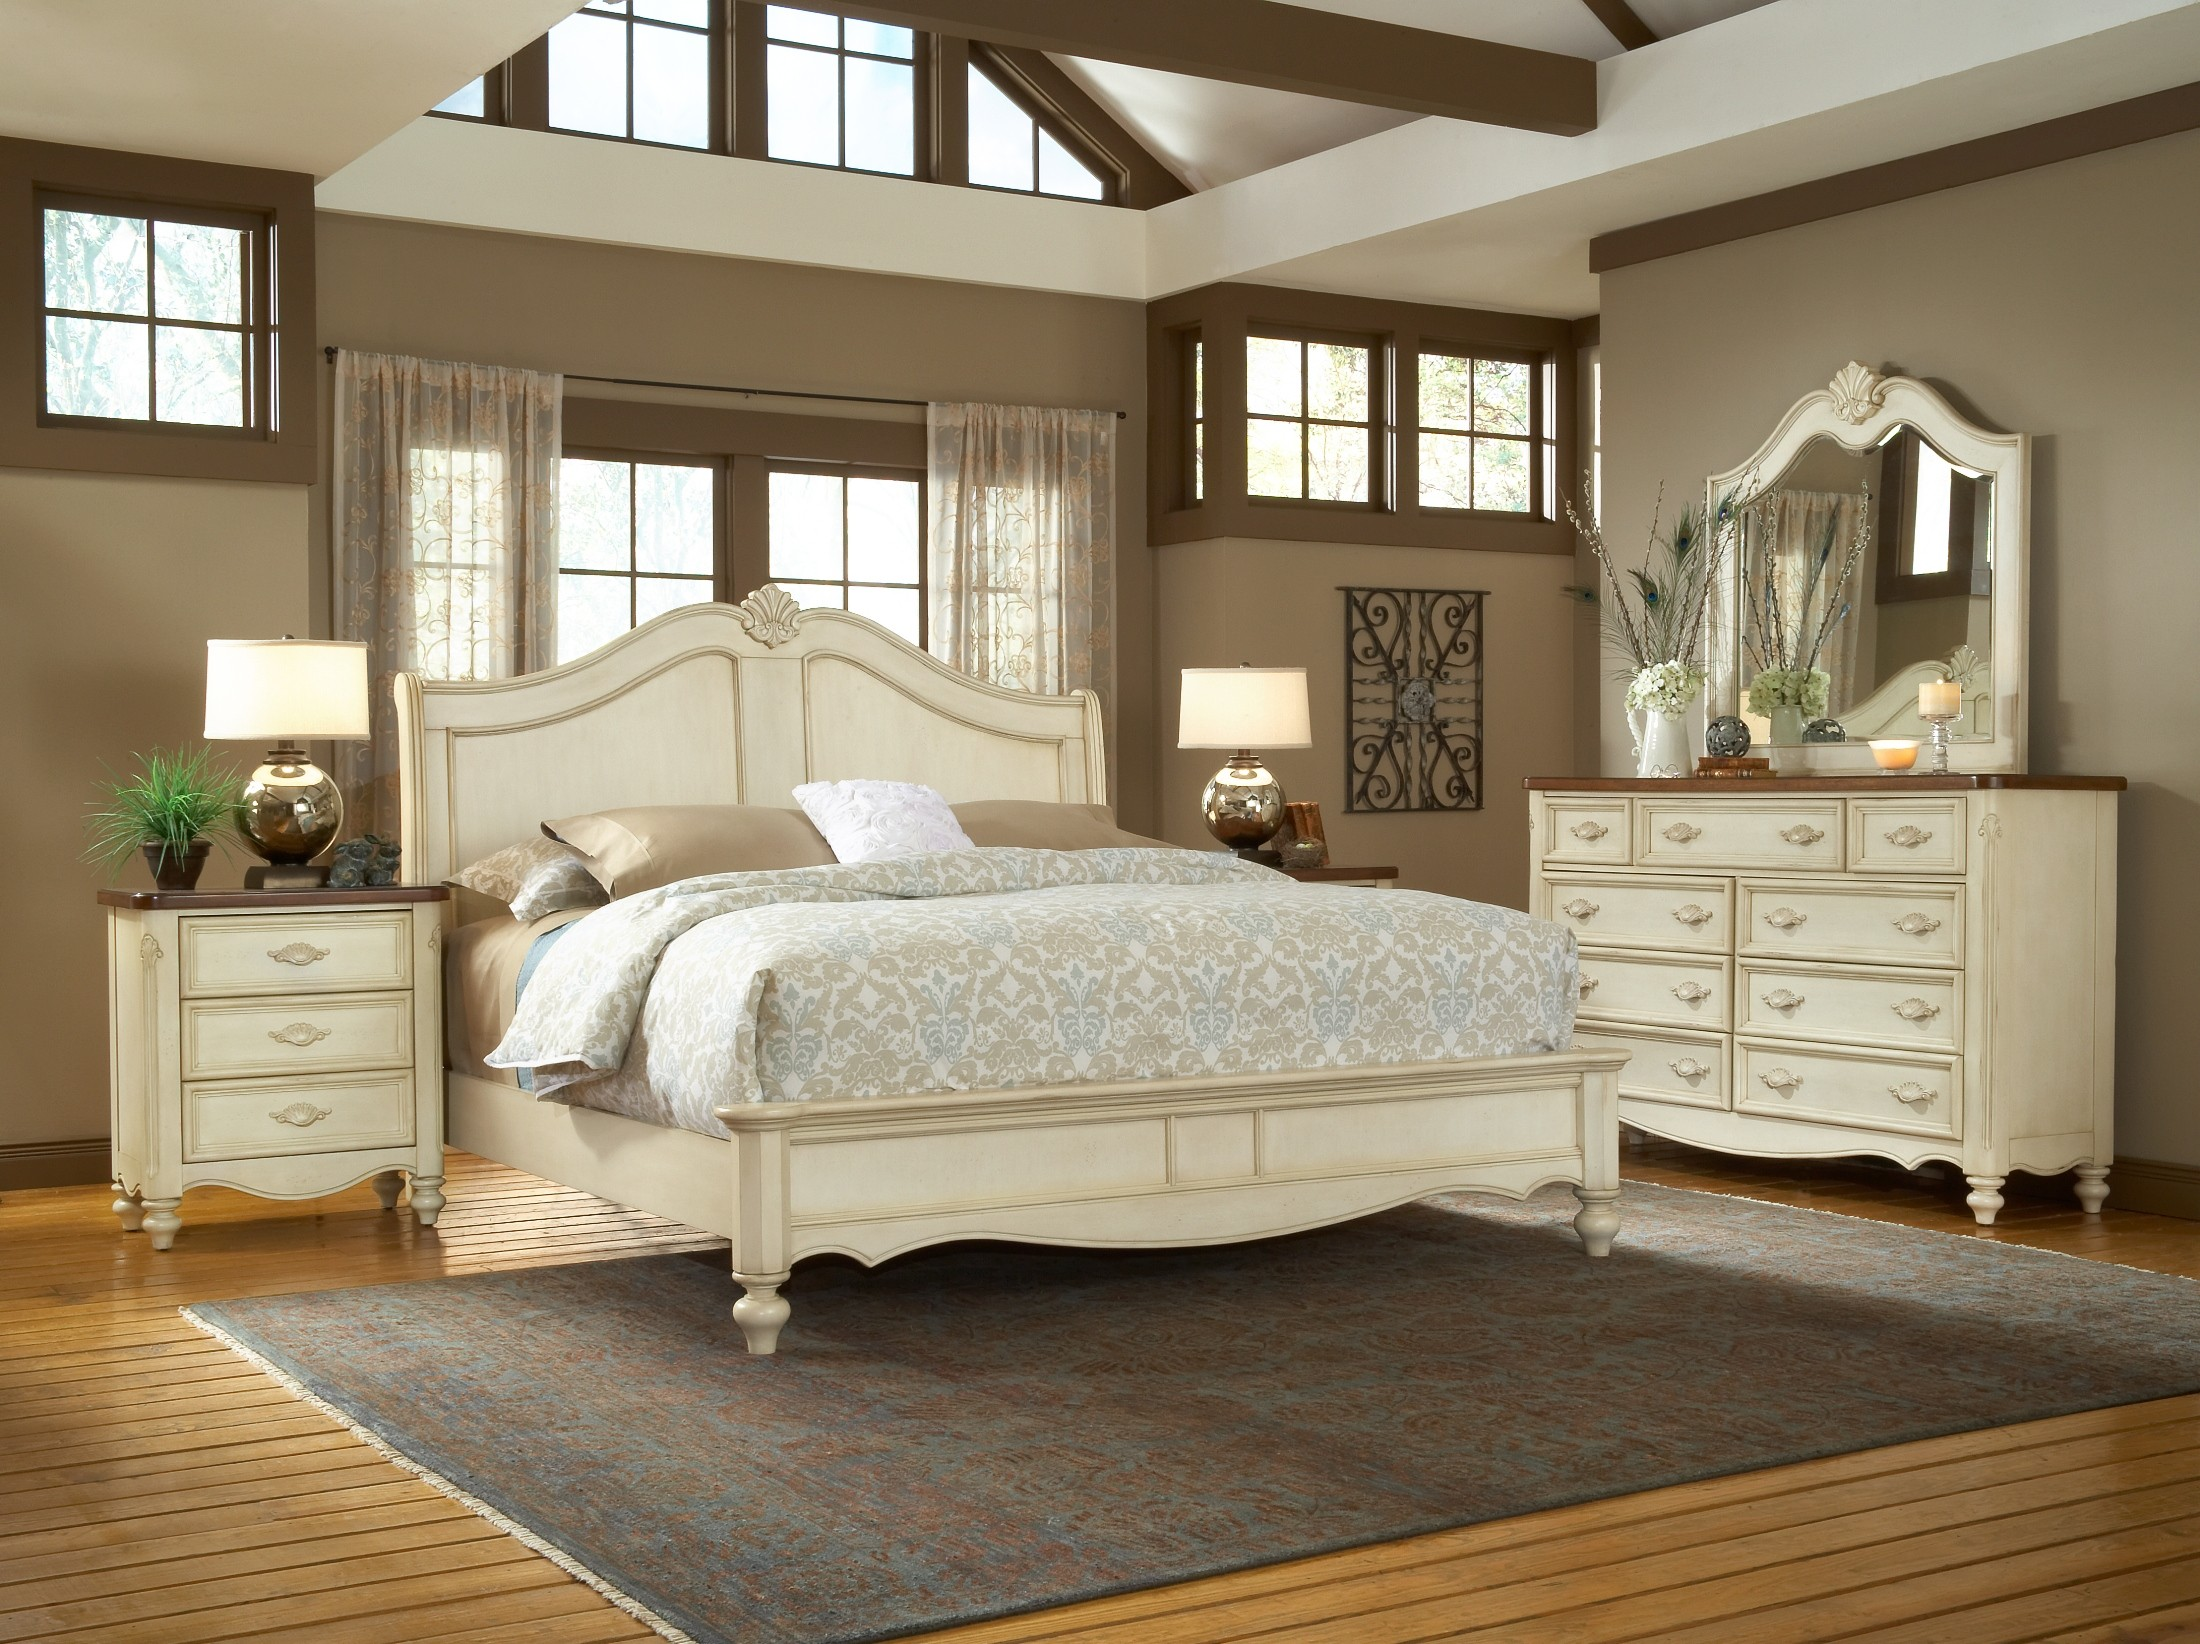 contemporary king bedroom set ariana bed set contemporary king bedroom set ariana bedroom white bed set